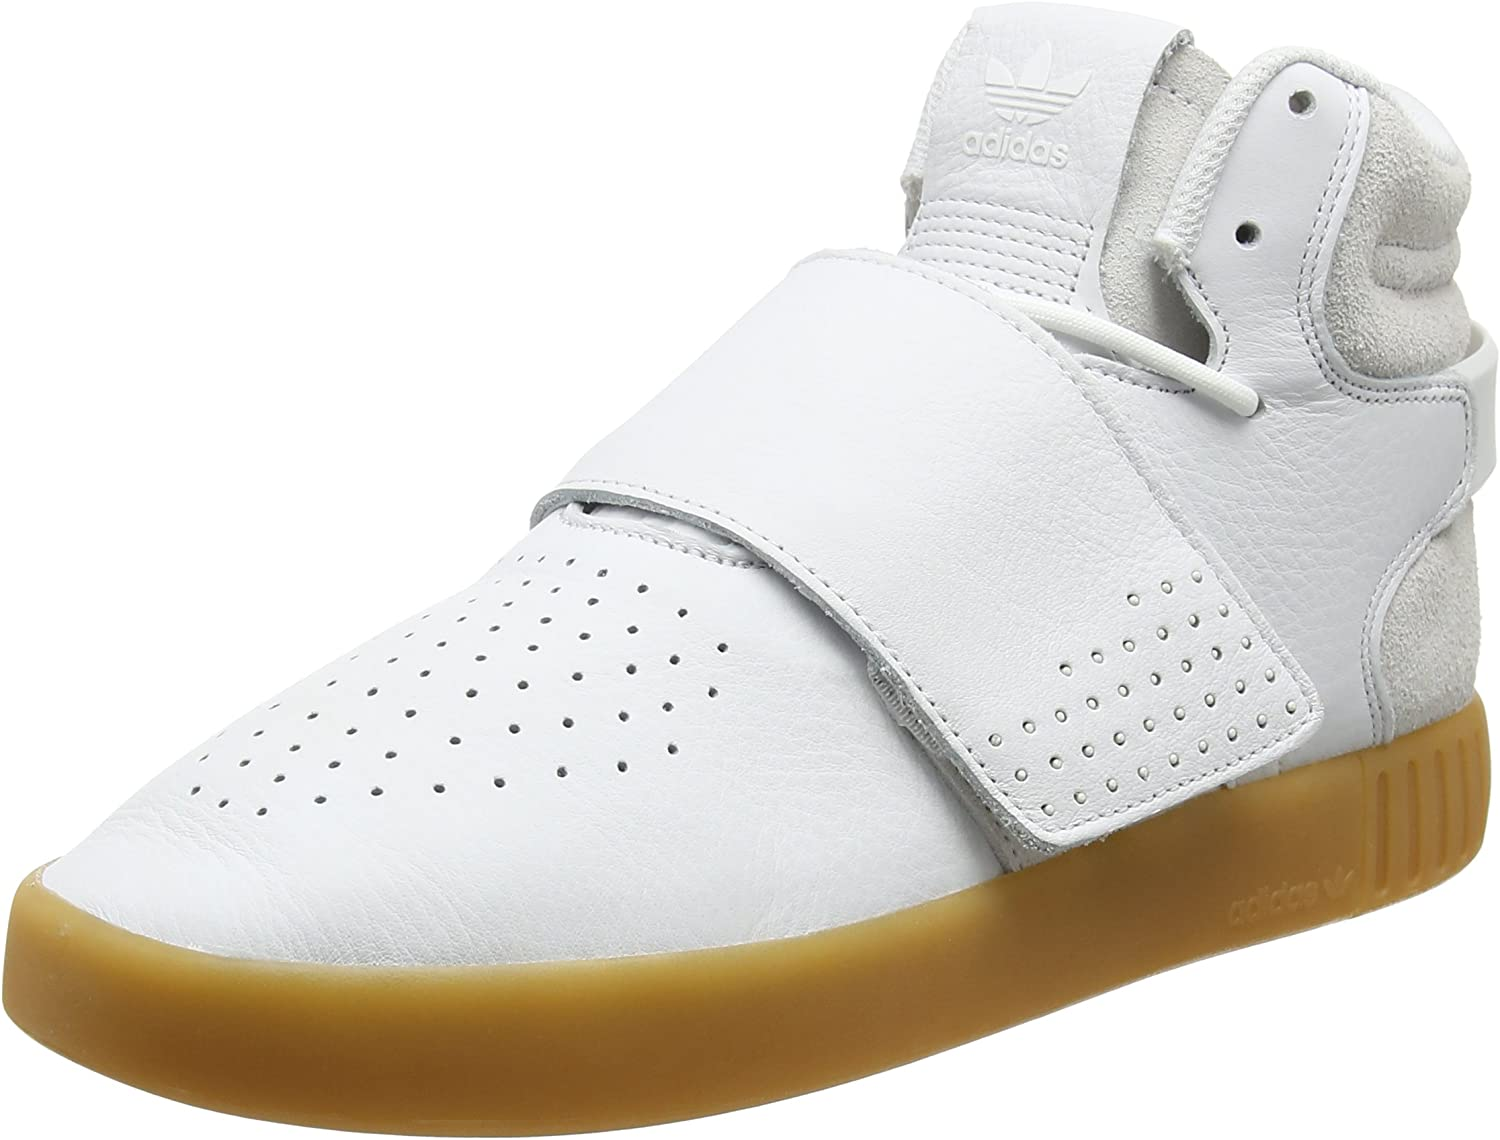 Adidas Unisex Adults' Tubular Invader Strap Hi-Top Trainers